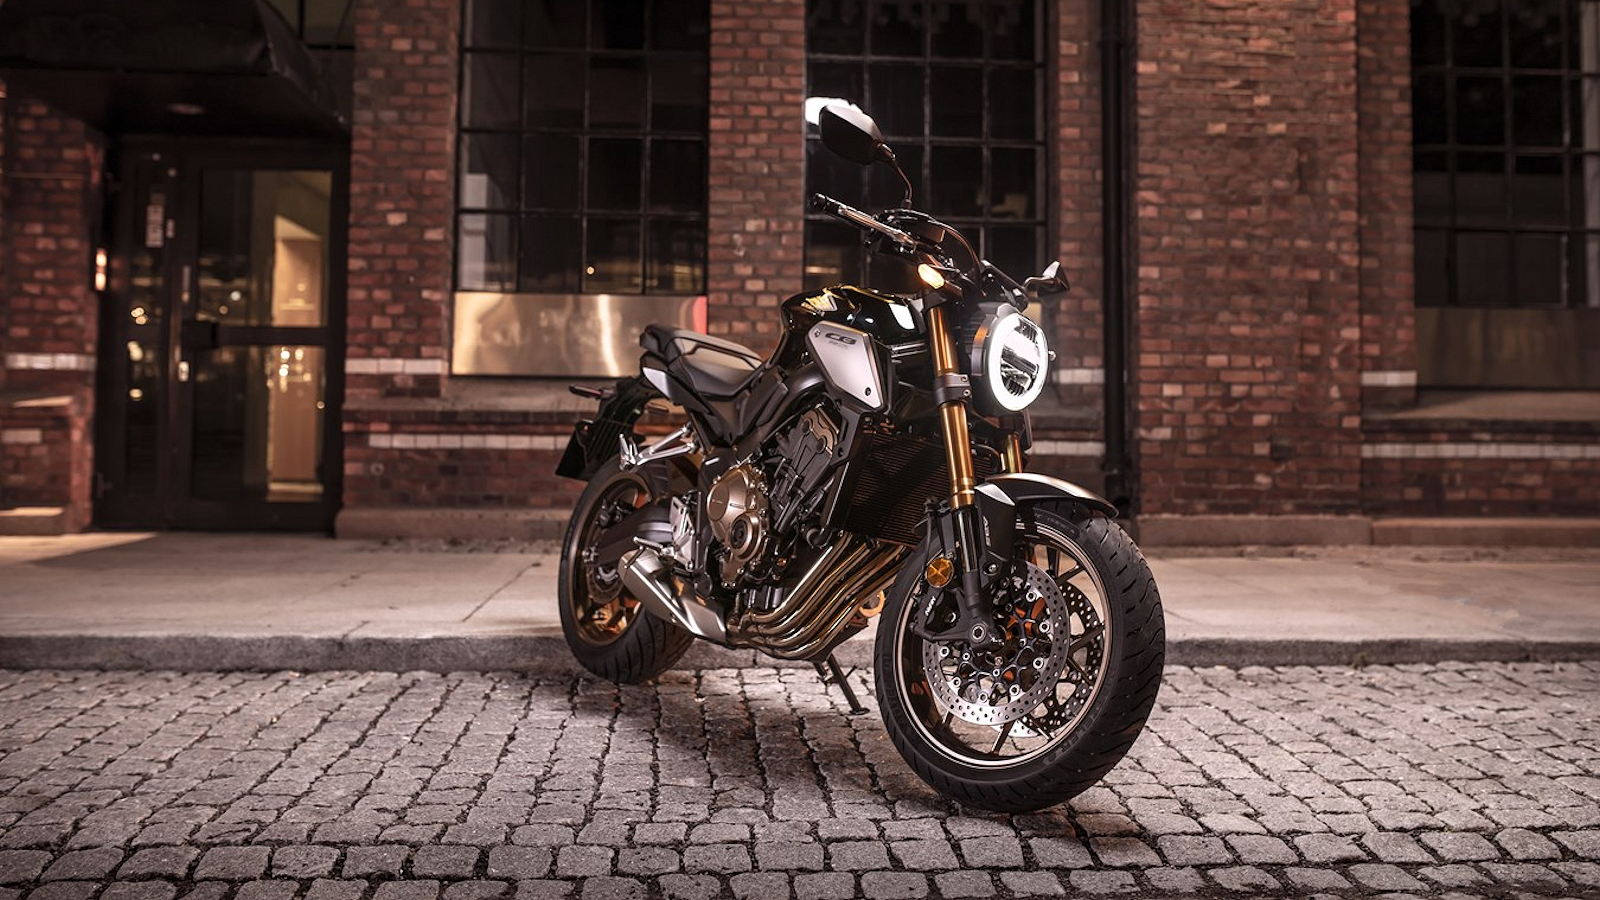 2019 Honda CB650R Pictures, Photos, Wallpapers.